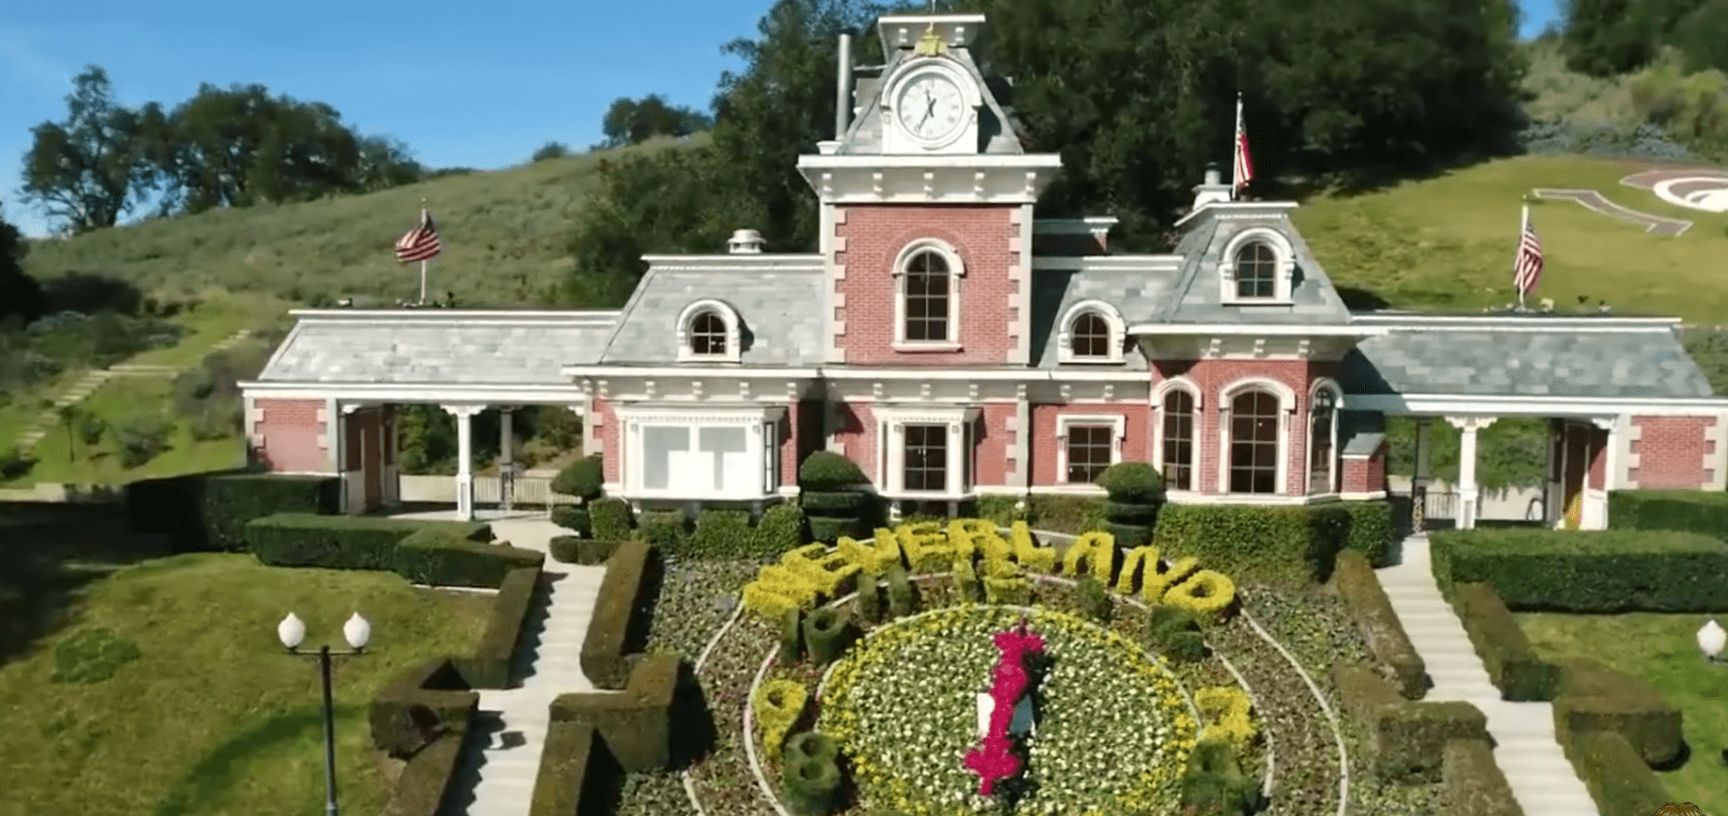 Image may contain: Neverland Firsthand, Neverland Ranch, Michael Jackson, new, news, update, Leaving Neverland, documentary, YouTube, Vegetation, Villa, Tower, Clock Tower, Cottage, Architecture, Outdoors, Grass, Housing, Building, Mansion, House, Plant, Hedge, Fence